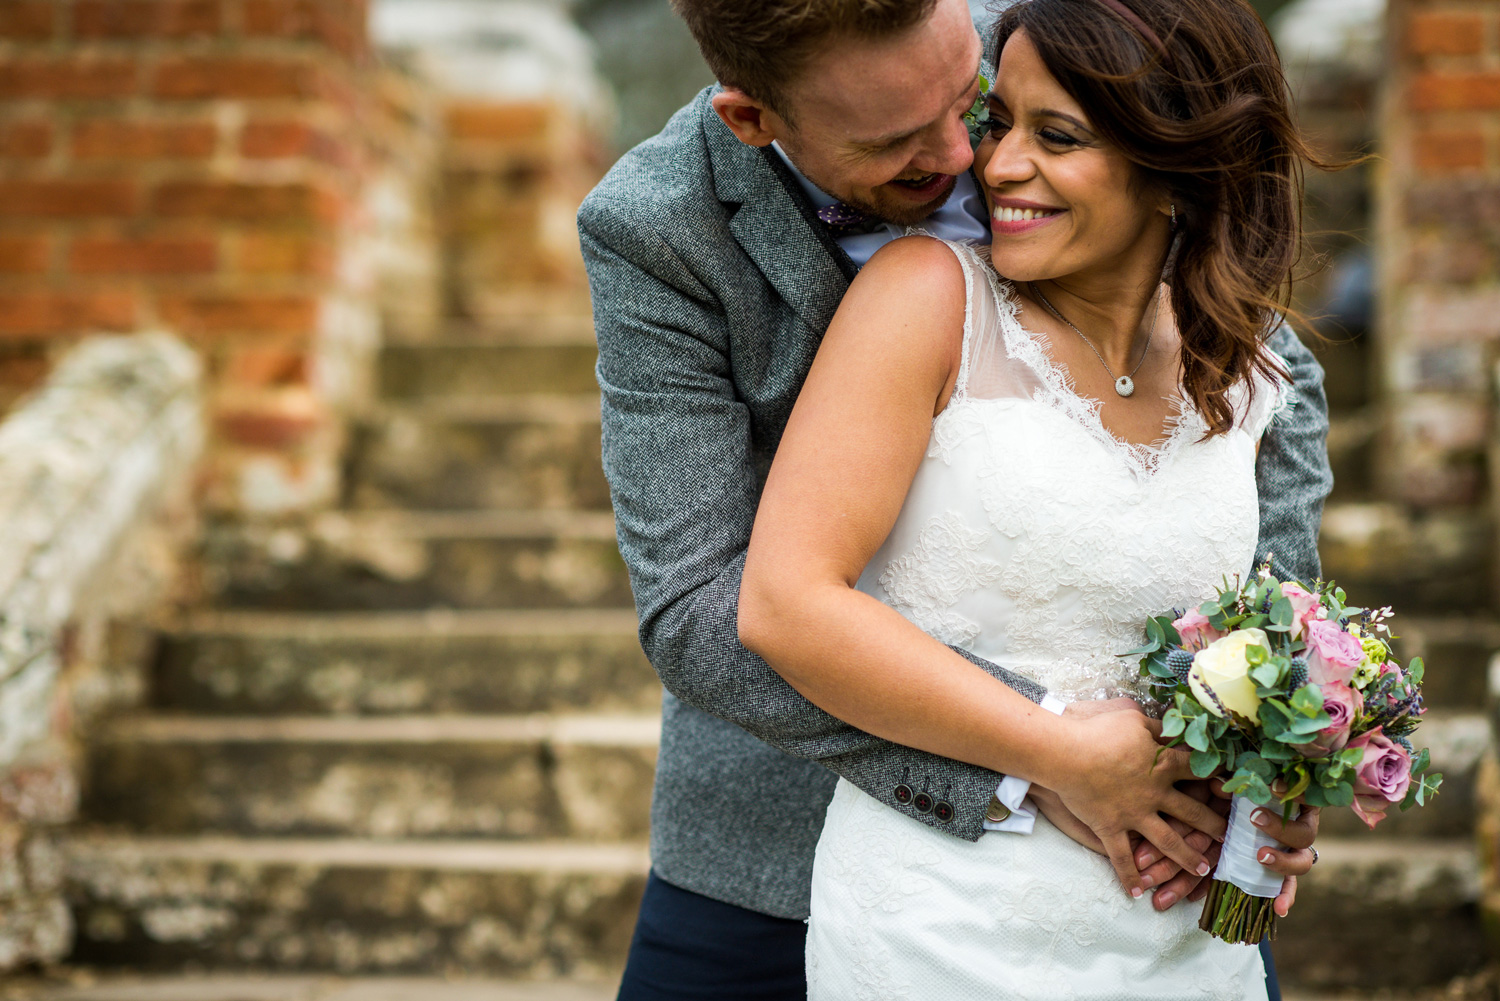 Bride and groom at Ufton court